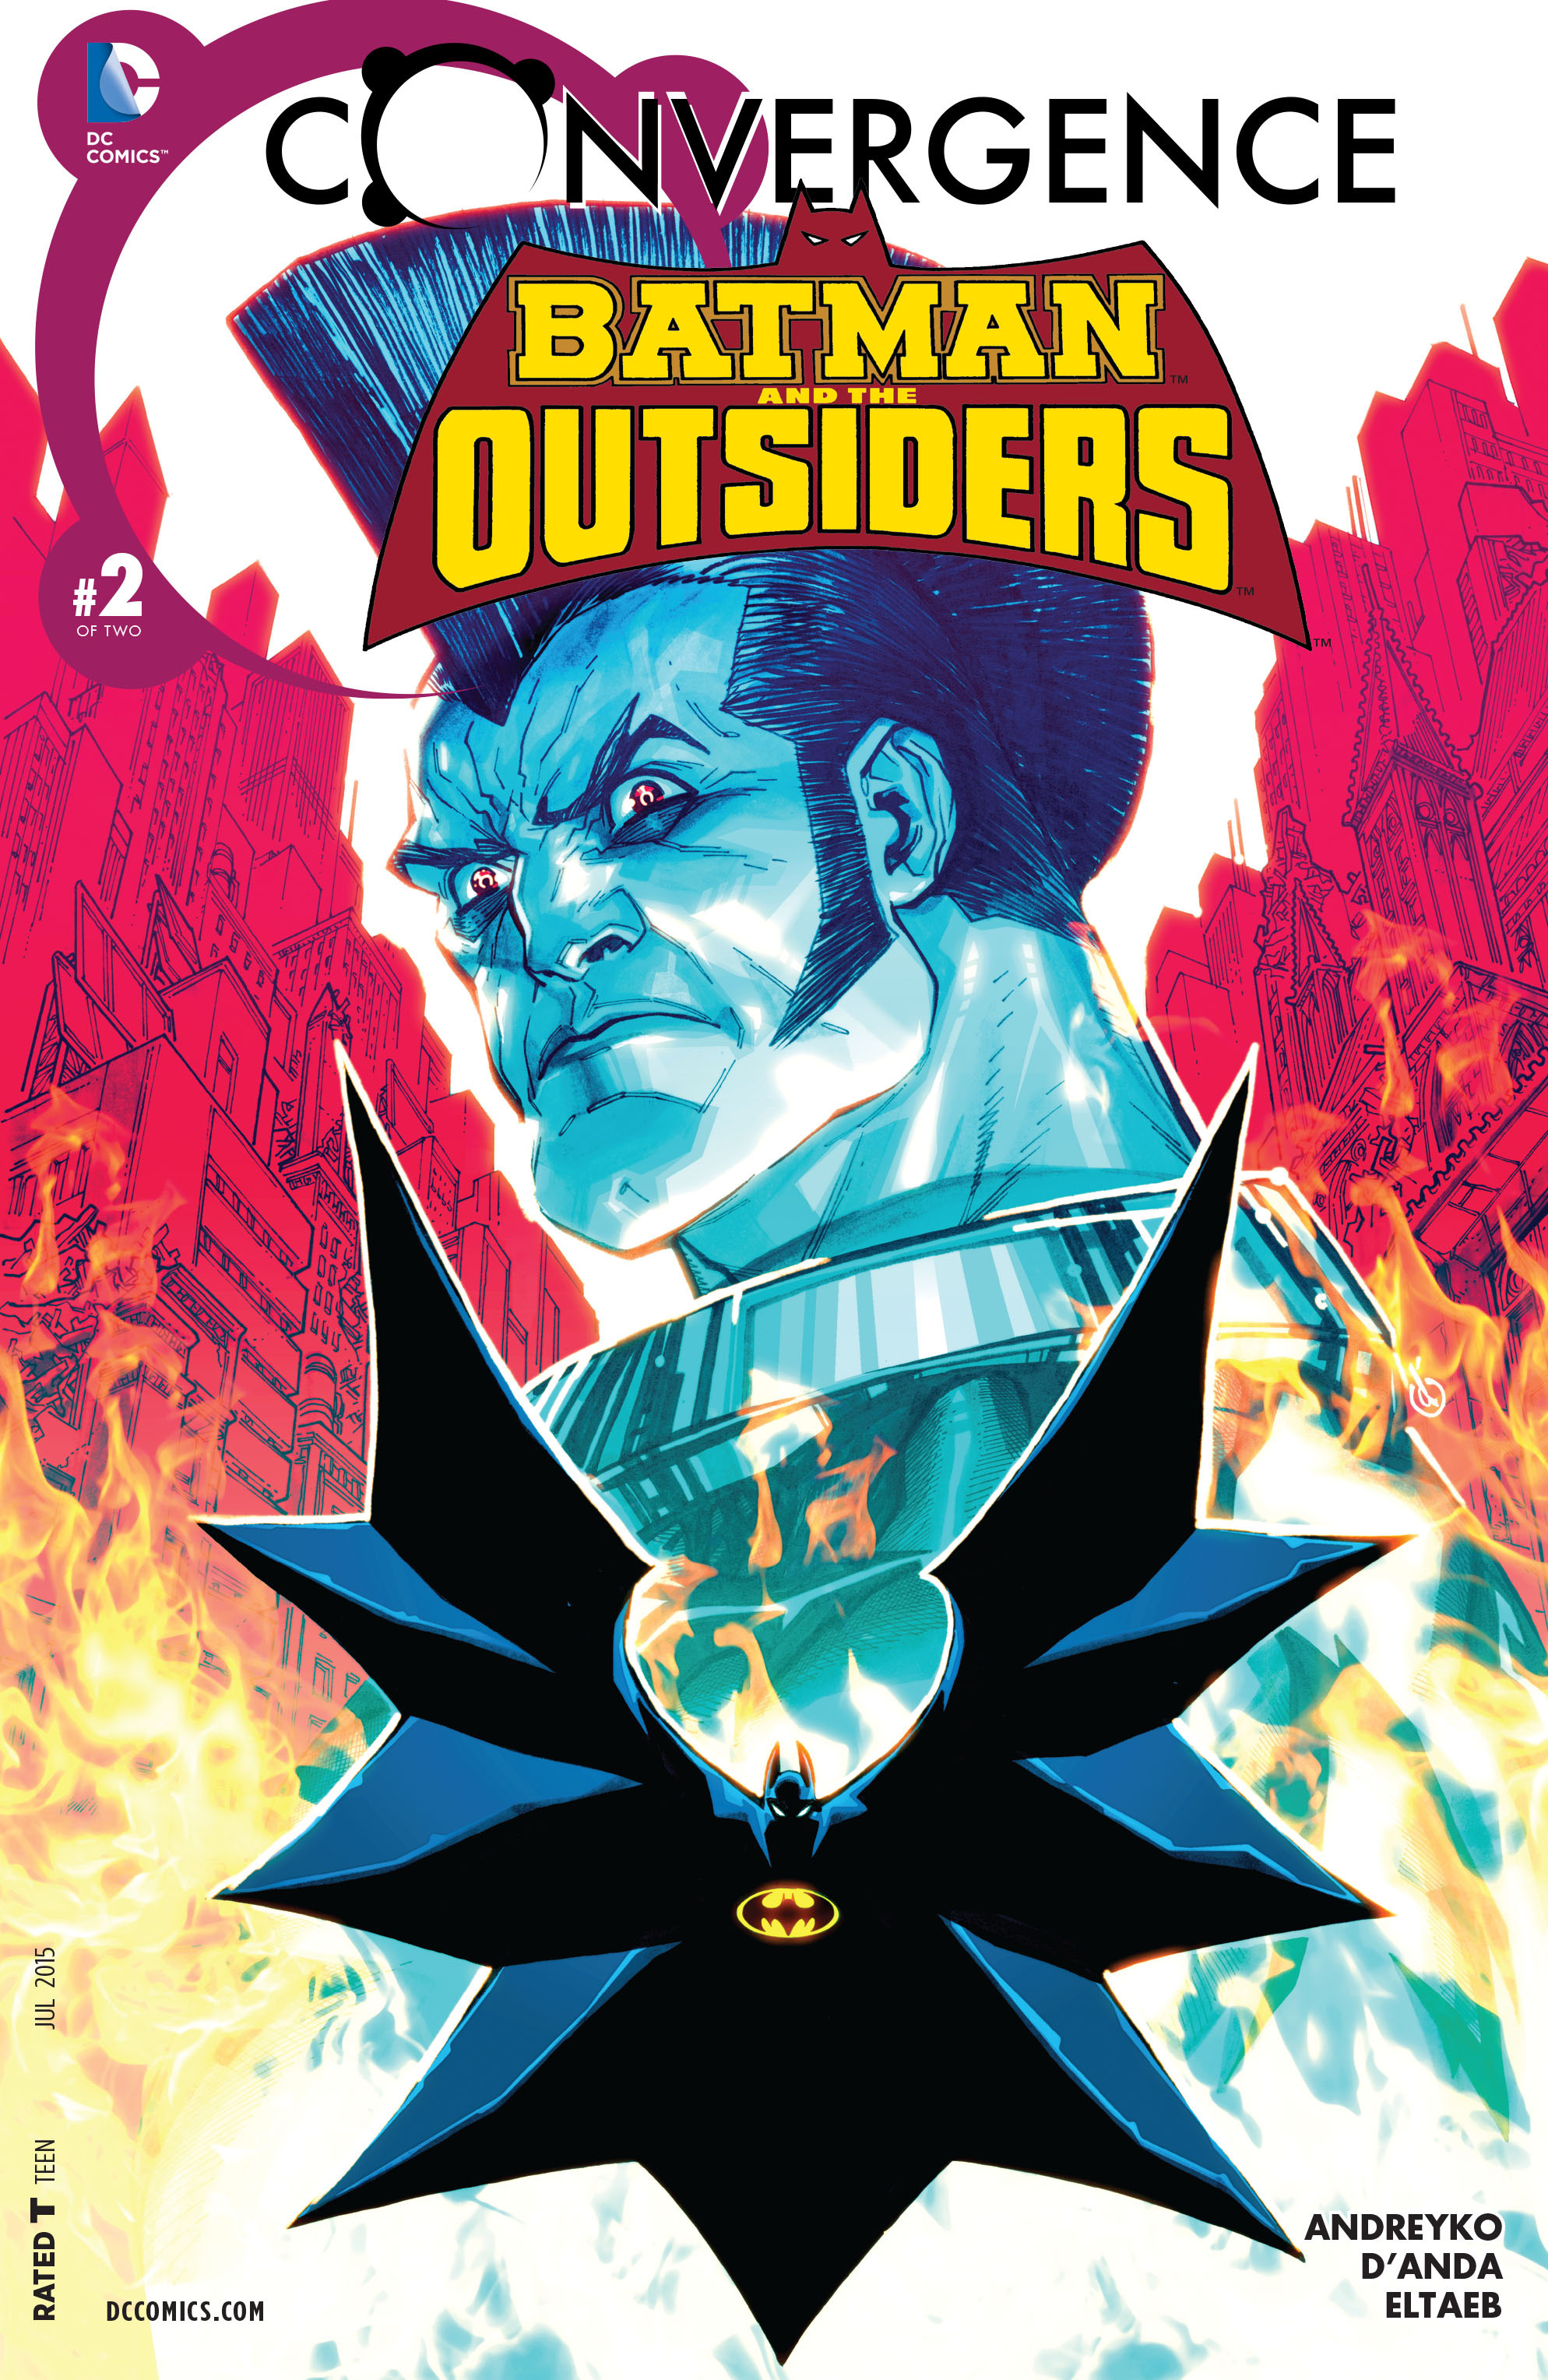 Convergence Batman And The Outsiders Read Convergence Batman And The Outsiders Comic Online In High Quality Read Full Comic Online For Free Read Comics Online In High Quality